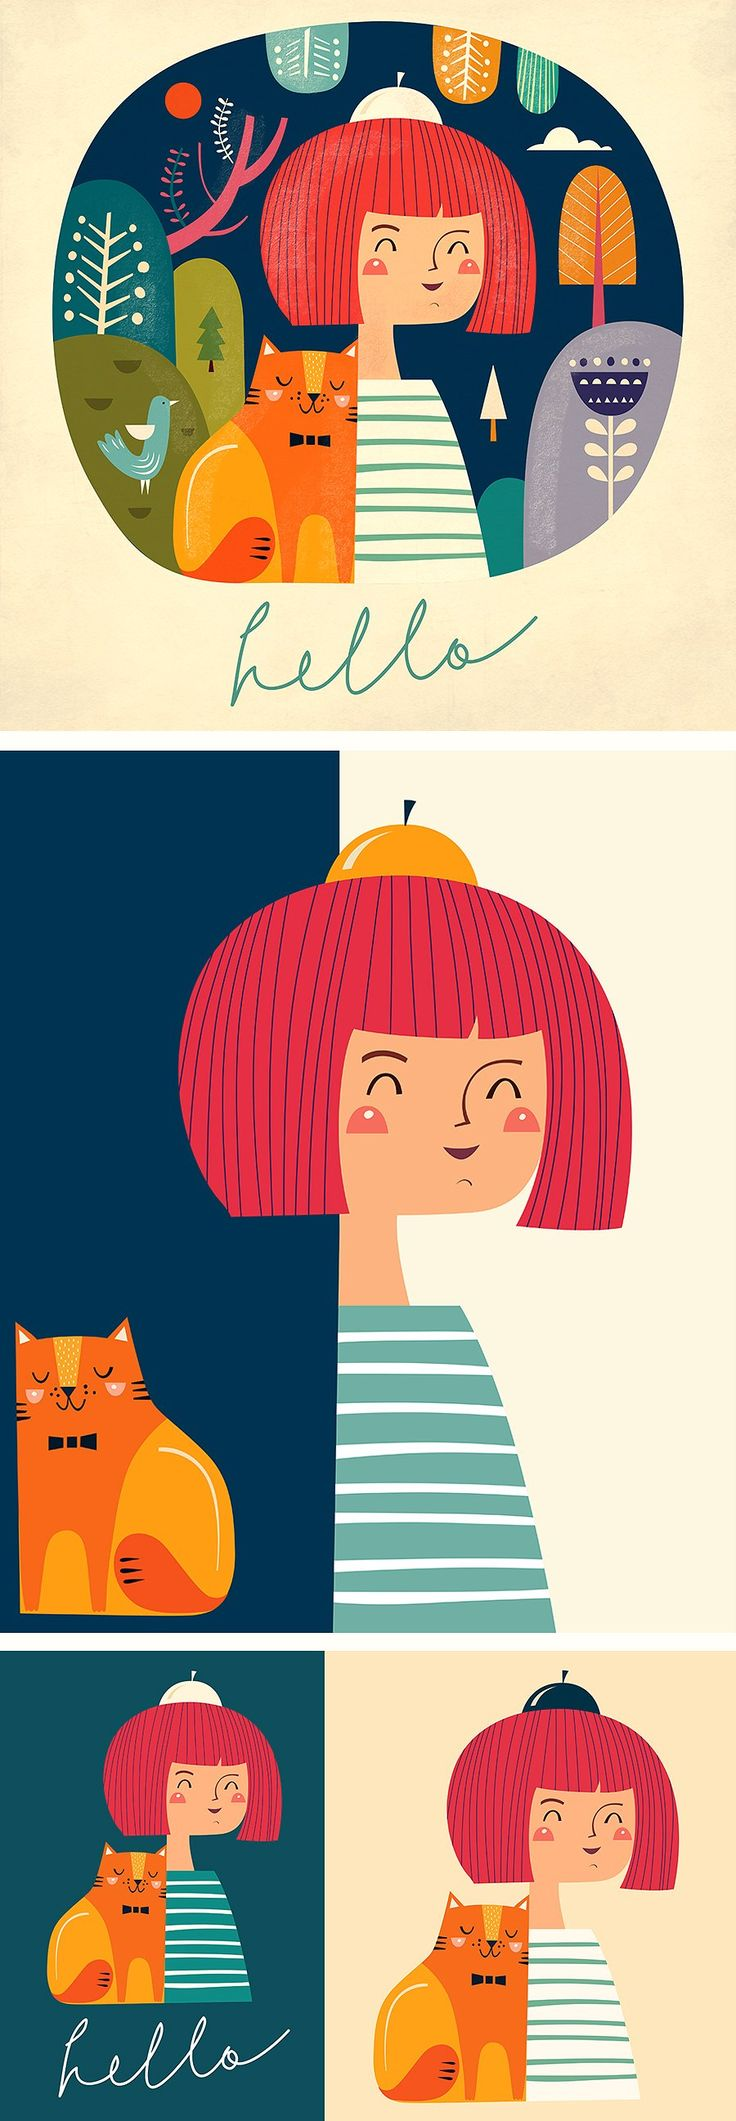 Illustrations with girls by MoleskoStudio on @creativemarket